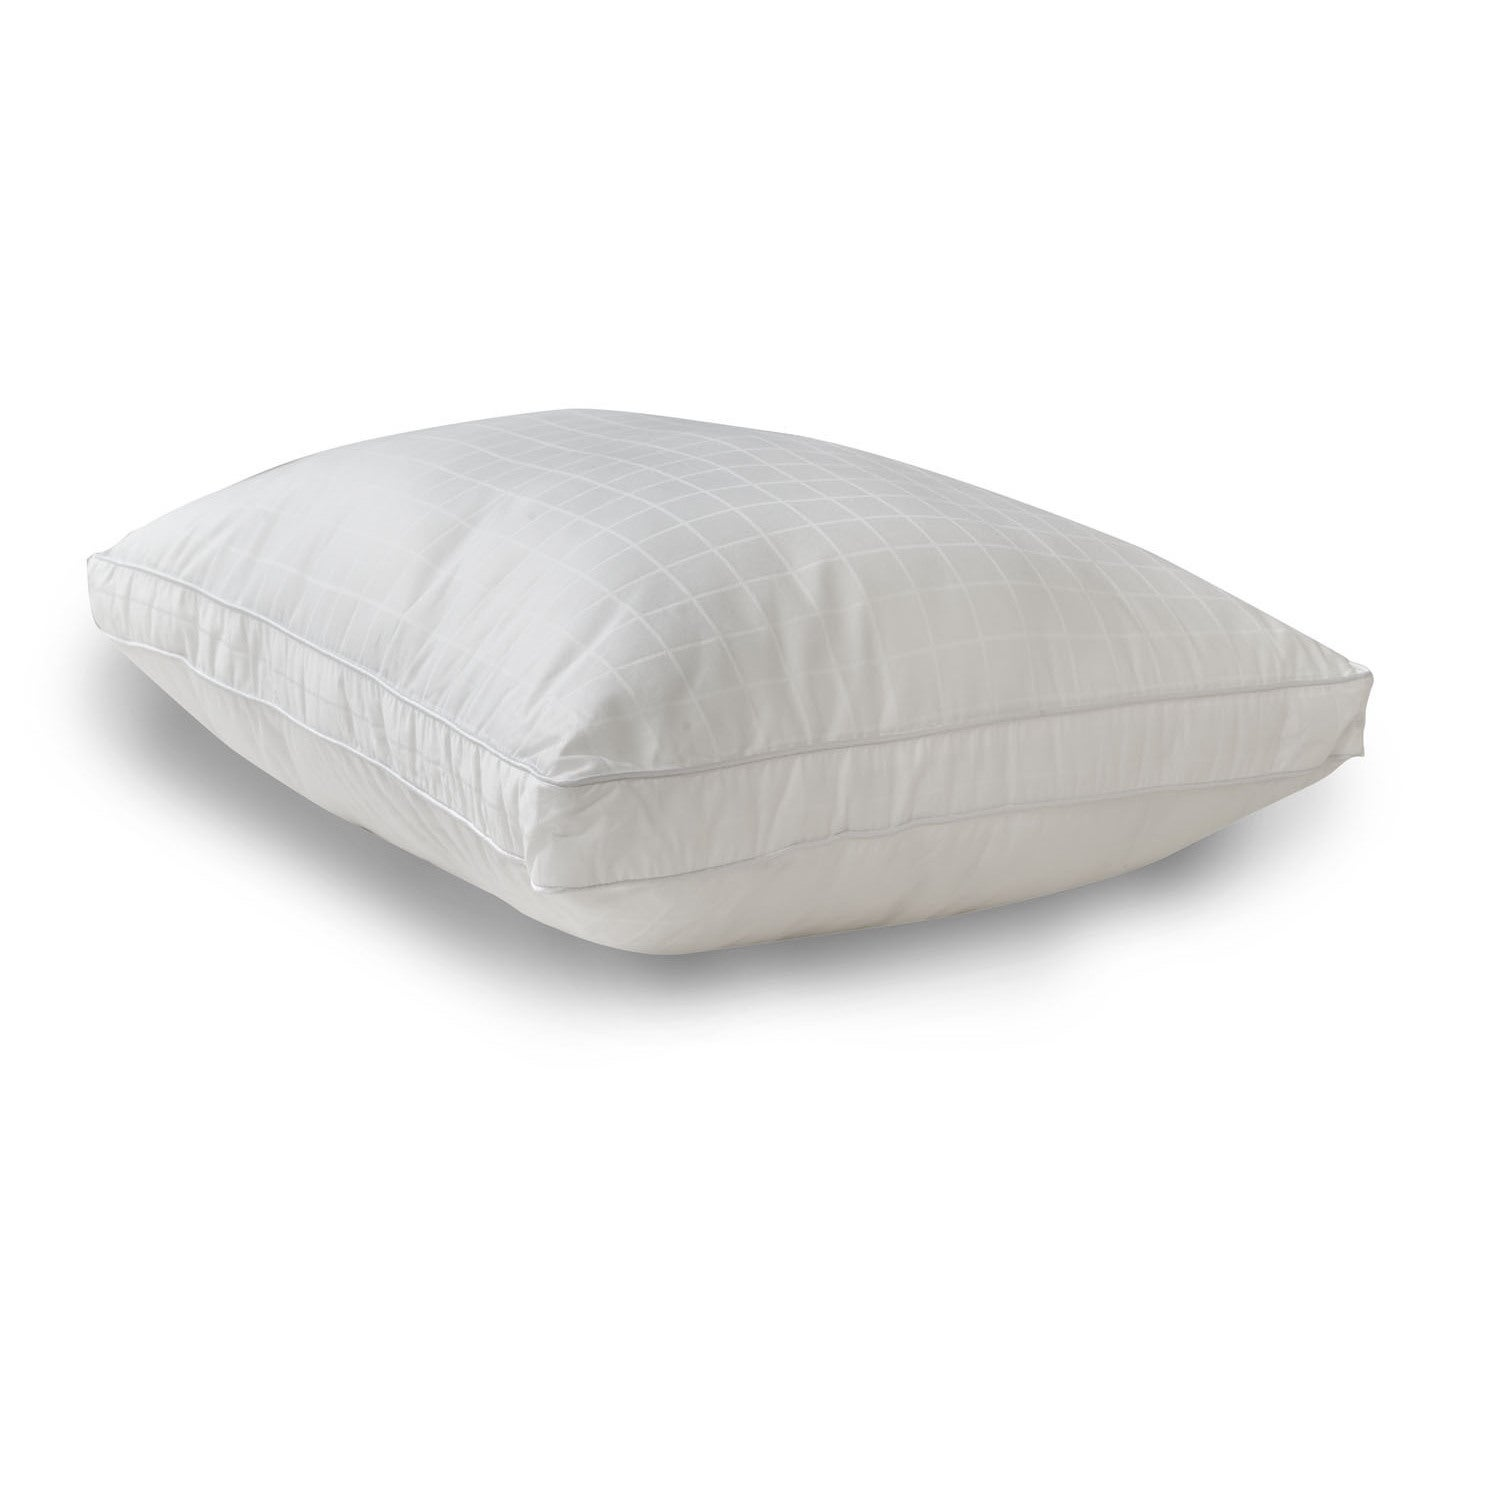 Down Alternative Pillow 100 percent Cotton Bed Pillow by Mastertex